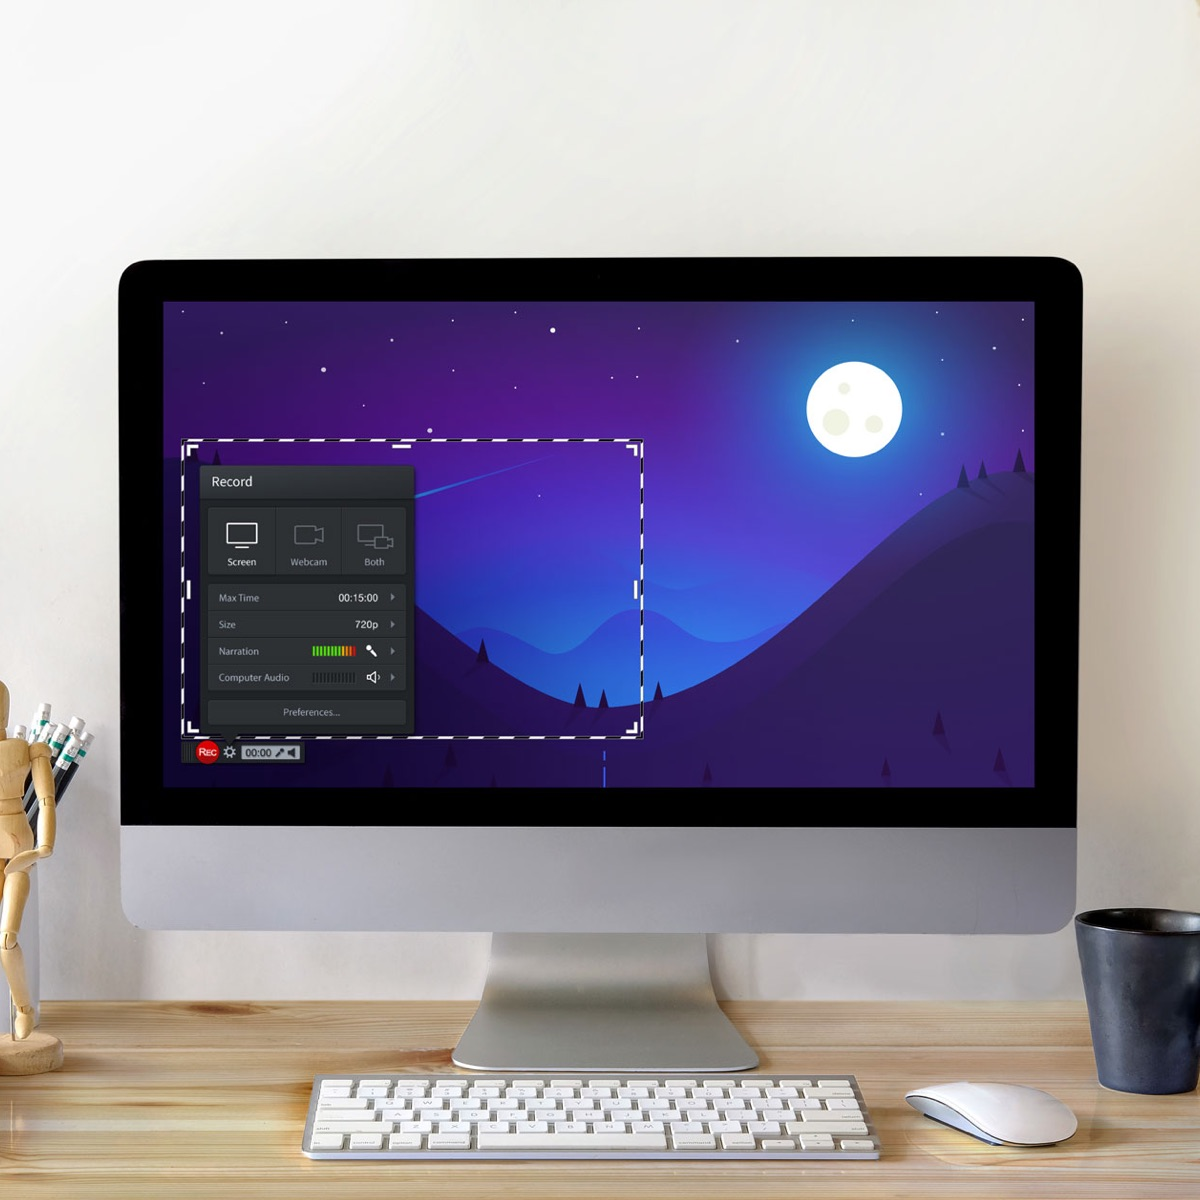 Capture Your Screen | Screen Recorder & Video Editor | Screencast-O